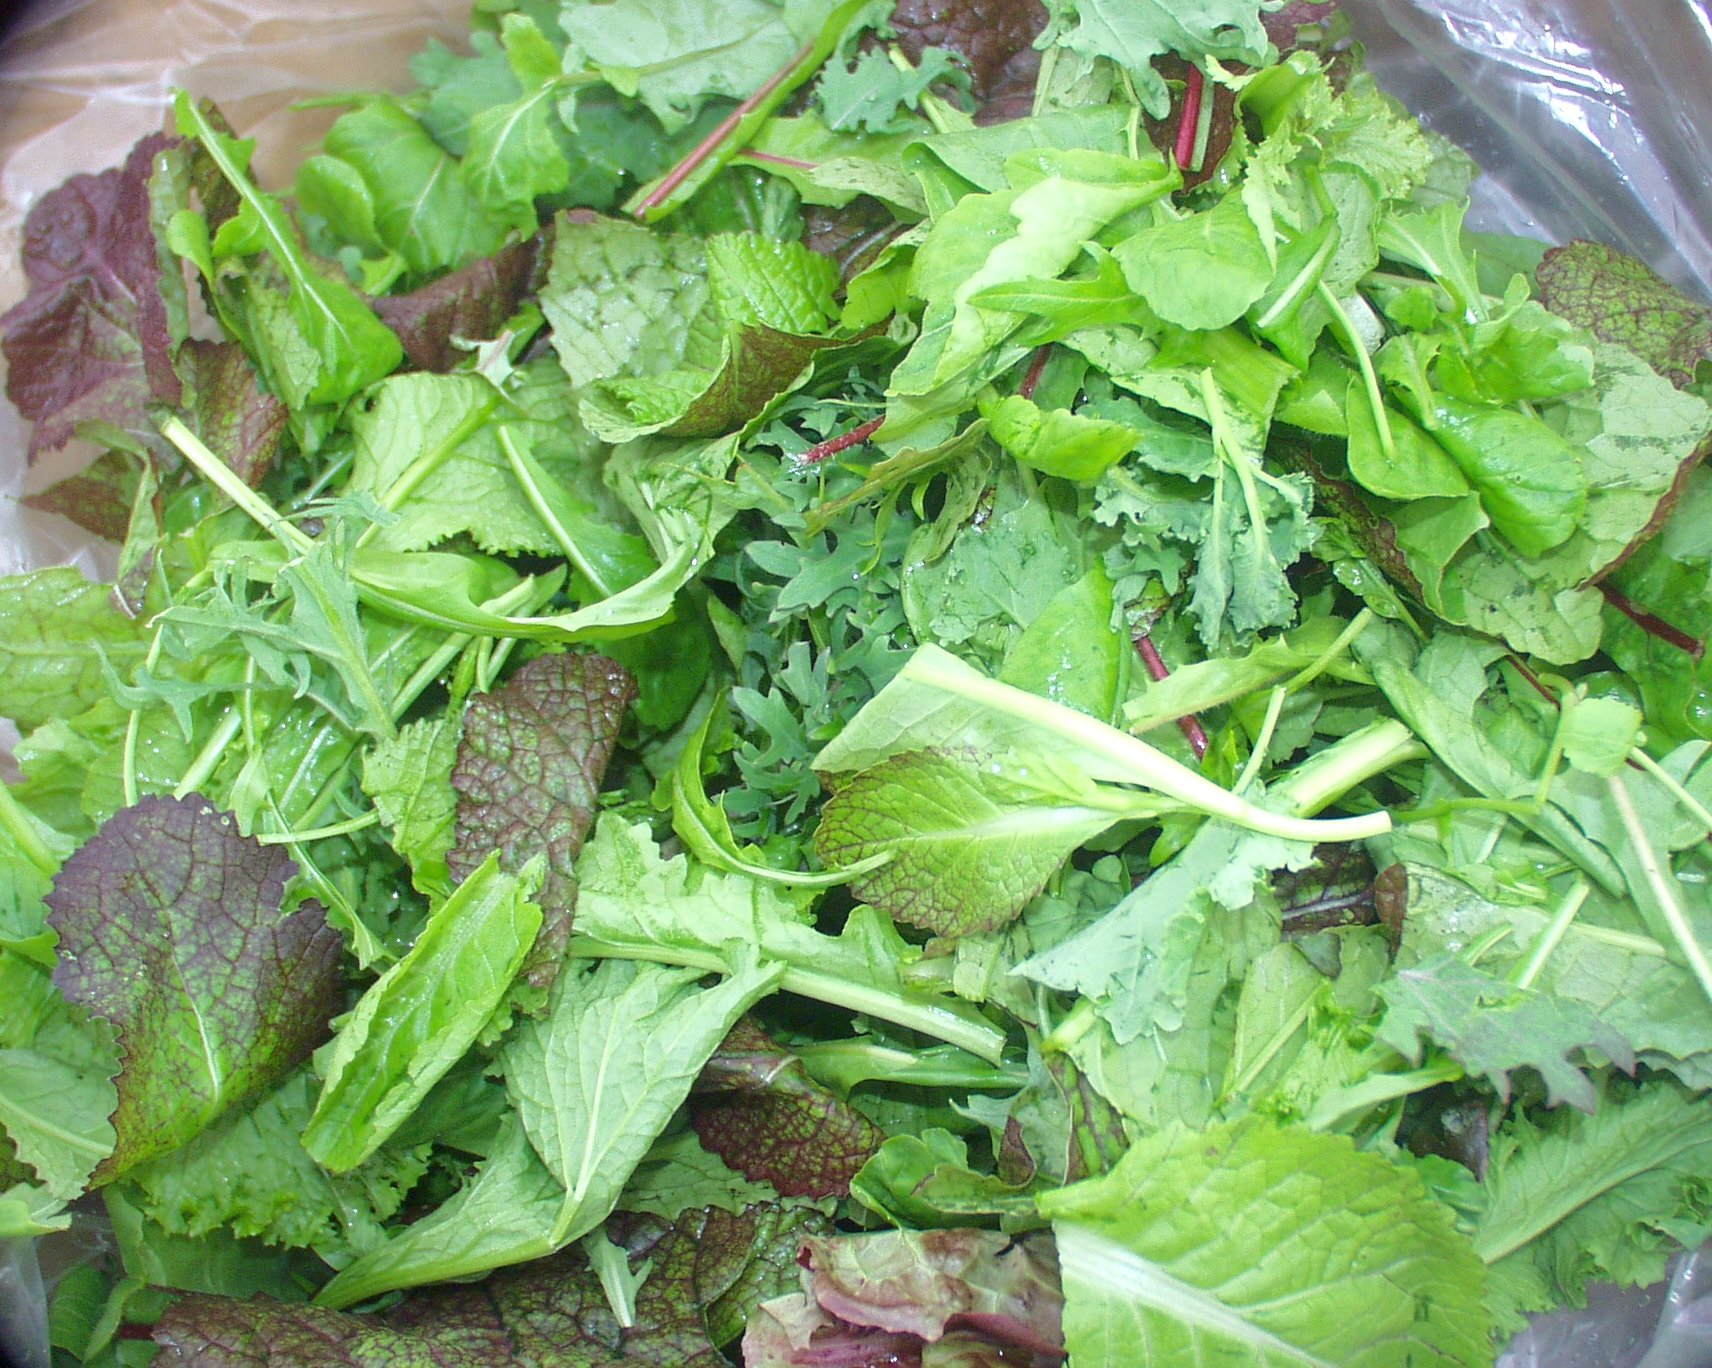 Colinwood Farms' salad mix is big and bold with spicy mustards and bitter mizunas. Photo copyright 2009 by Zachary D. Lyons.